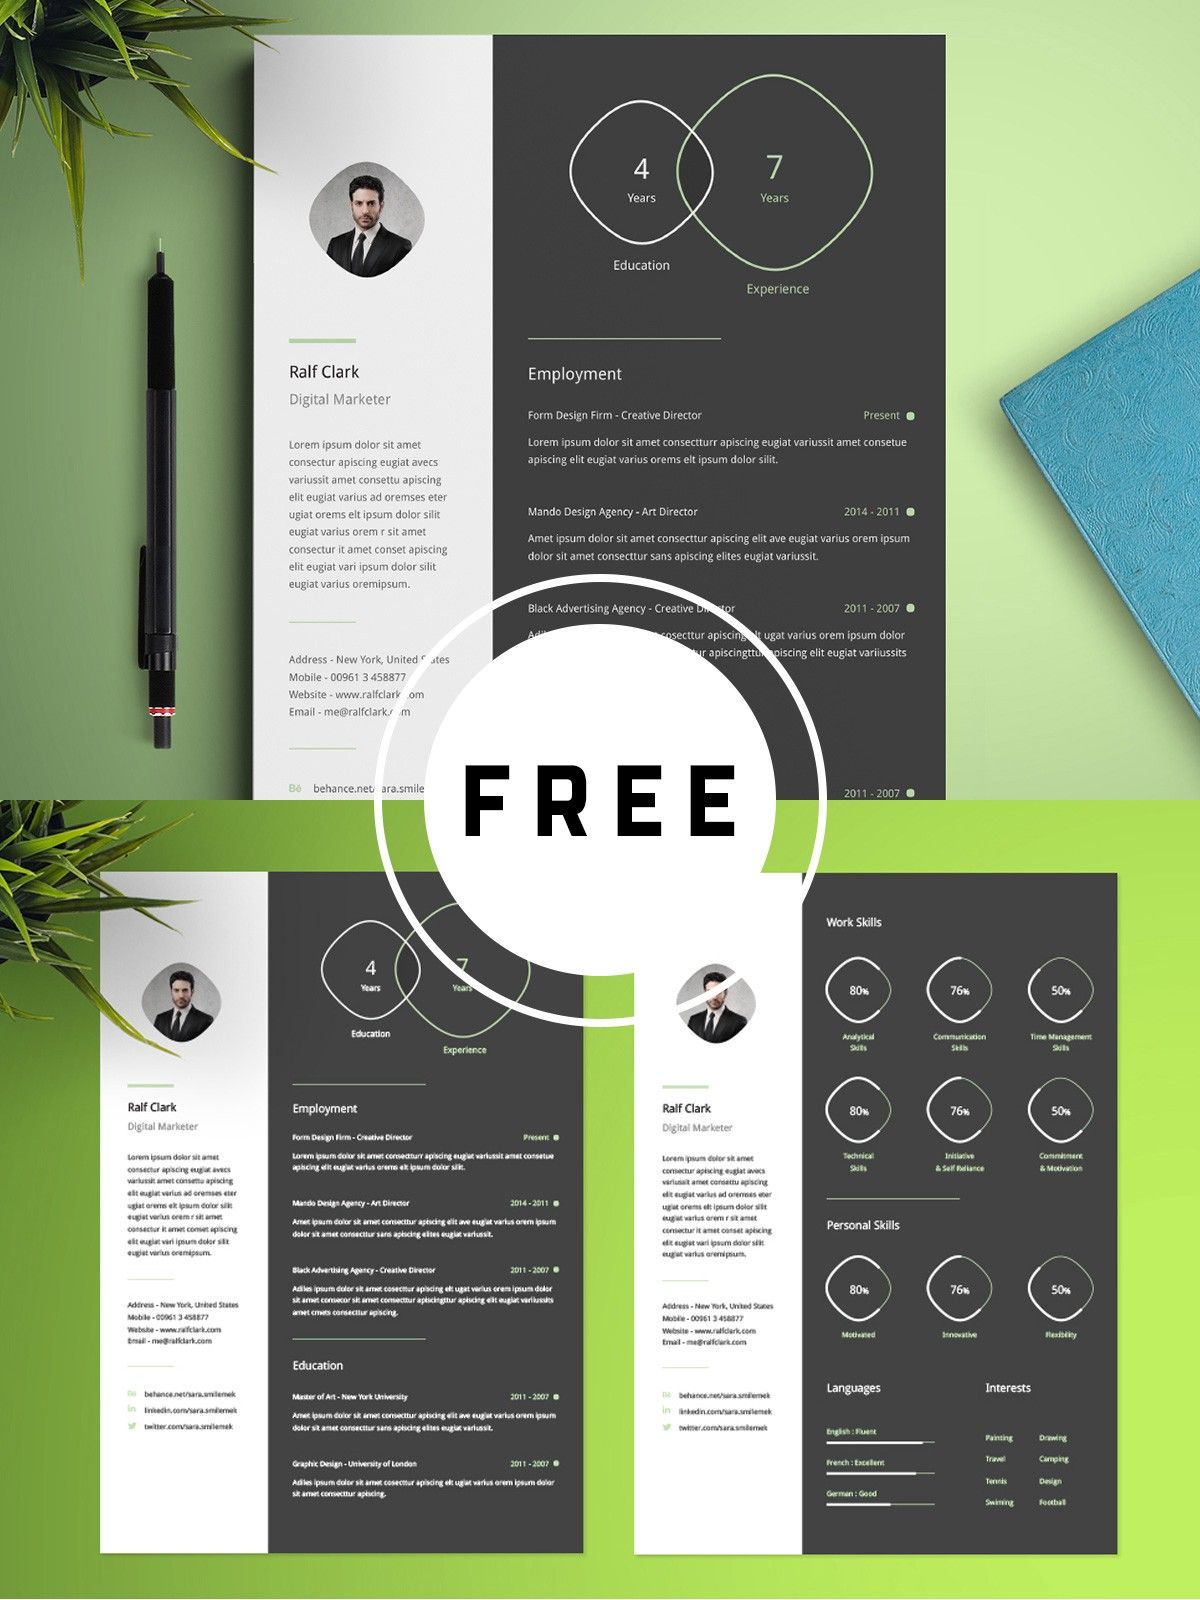 100 Free Best Resume Templates For 2019 (With images